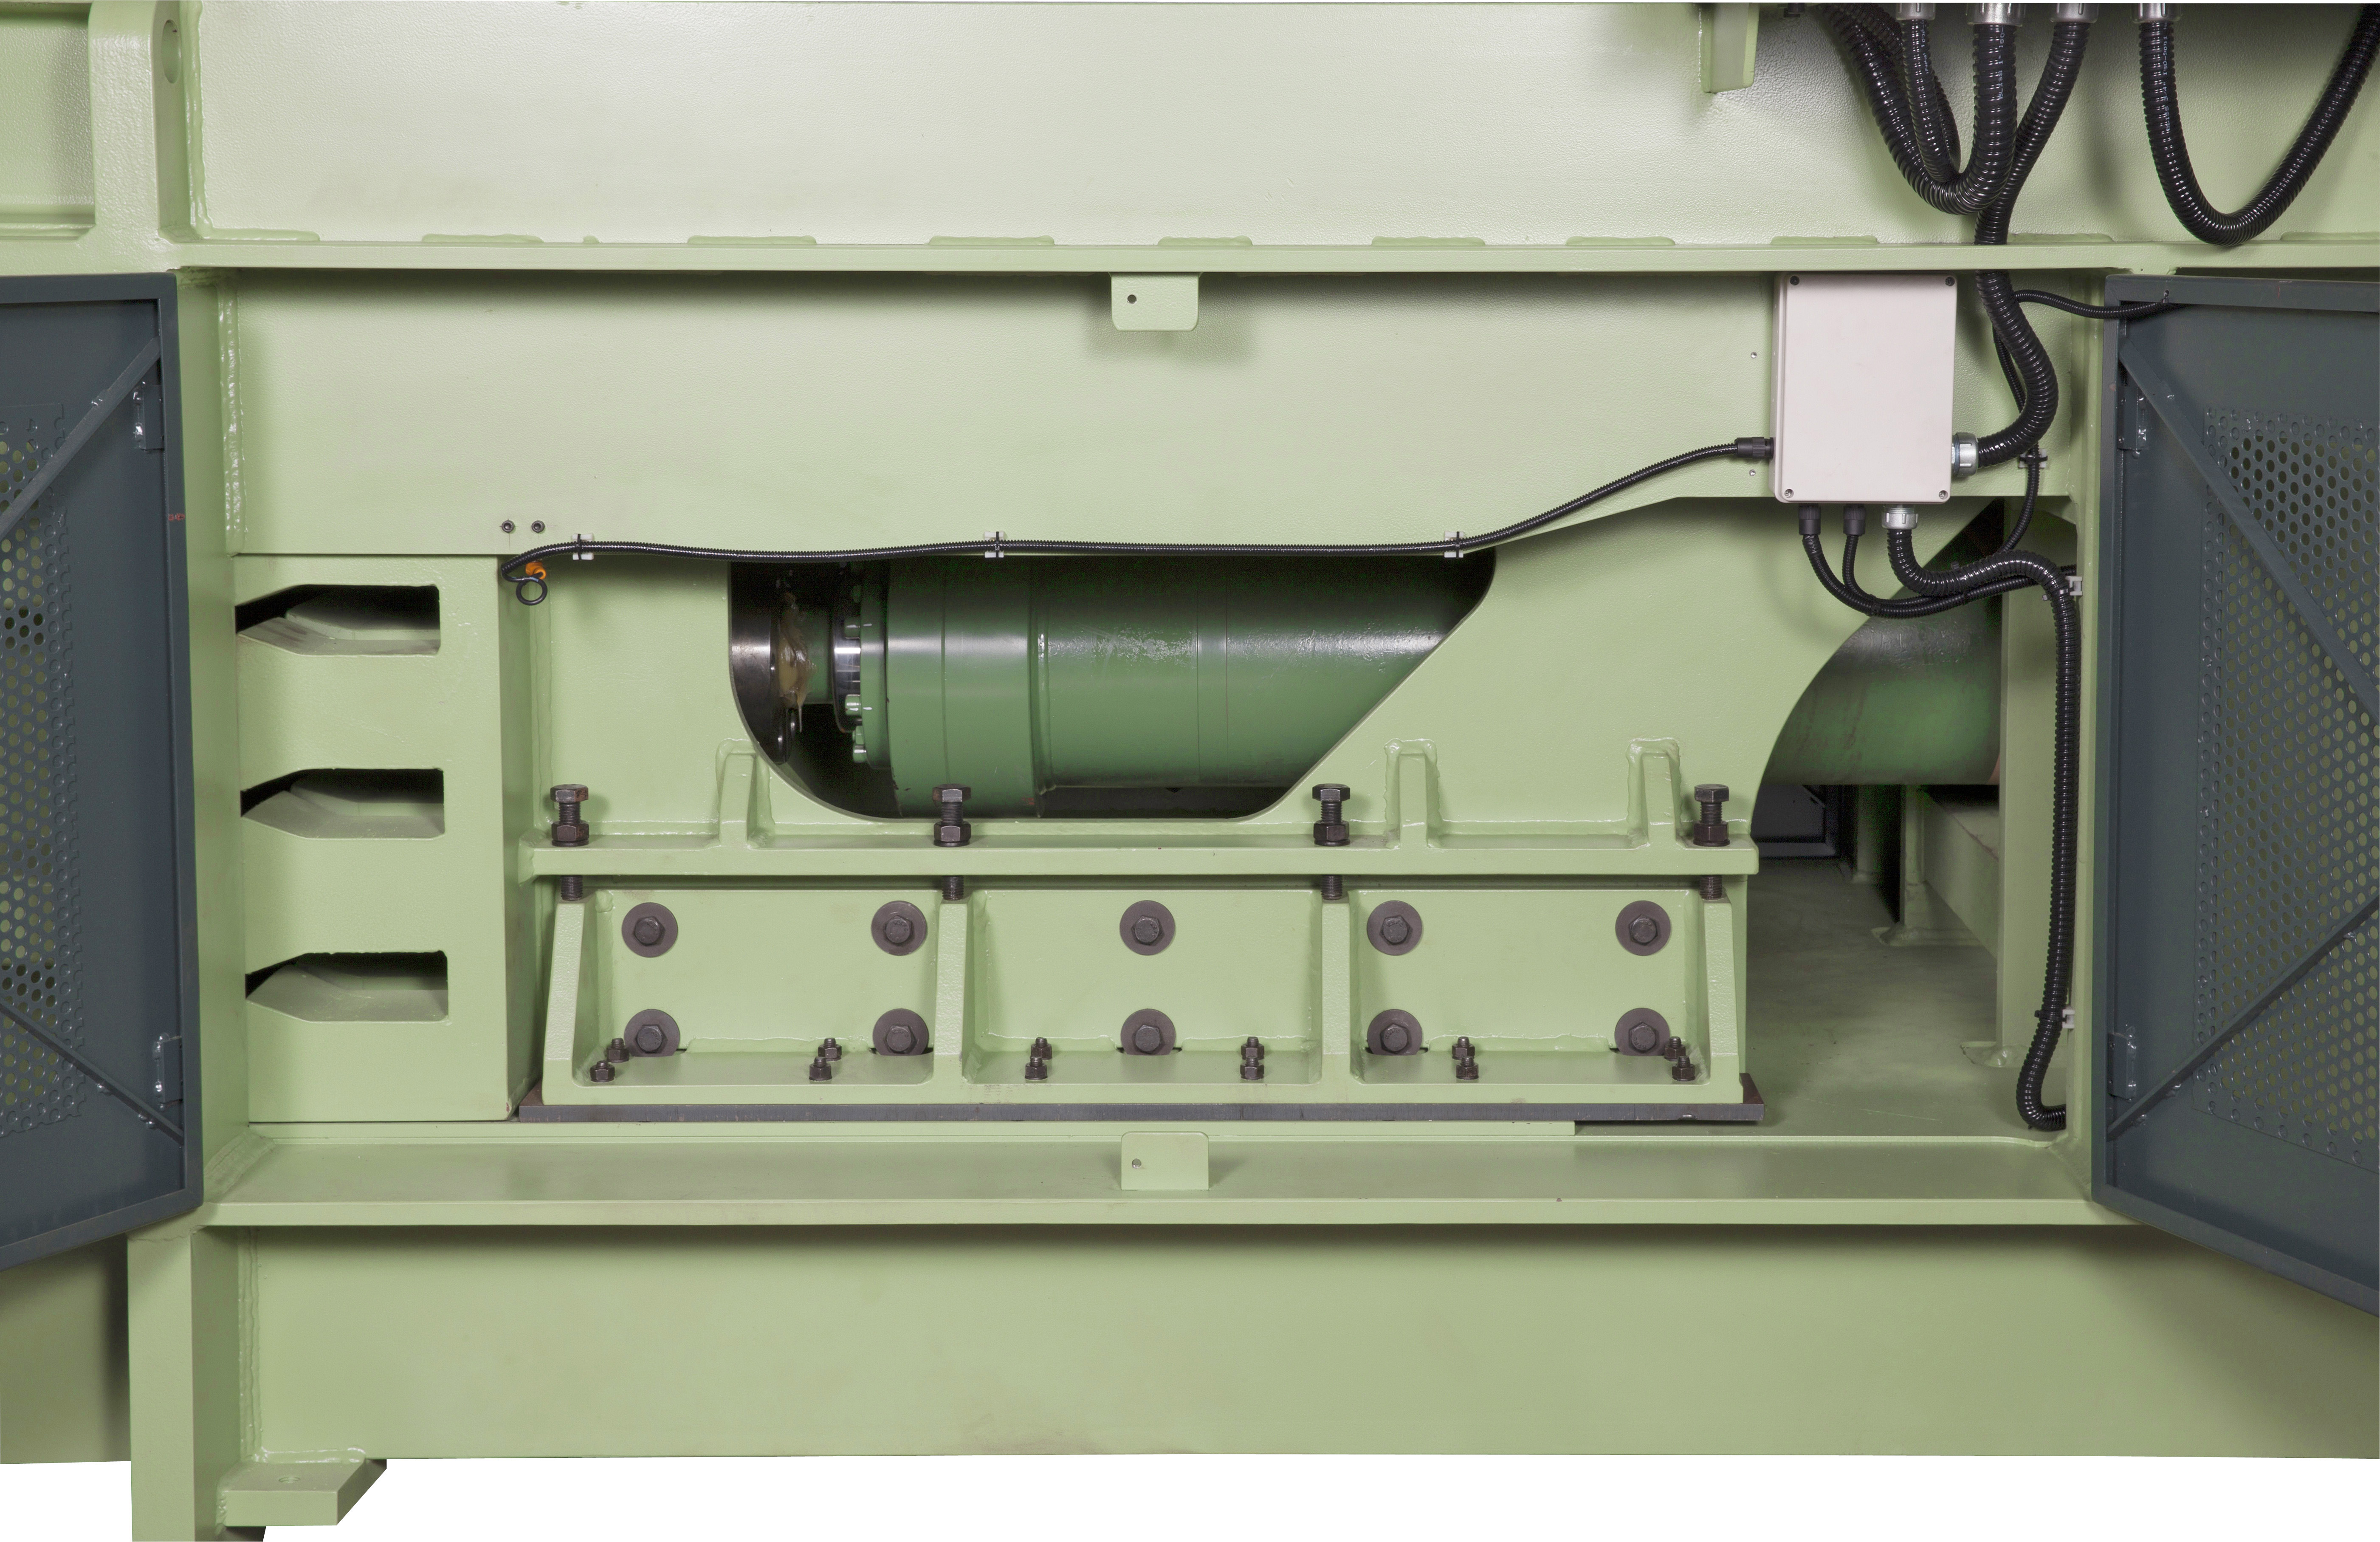 Cb Engineering C Series Automatic Channel Baler Grooved Wiring Board The Floor Design And Press Ram Grooves On Balers Are Designed To Stop Paper Plastics From Sliding Under Into Back